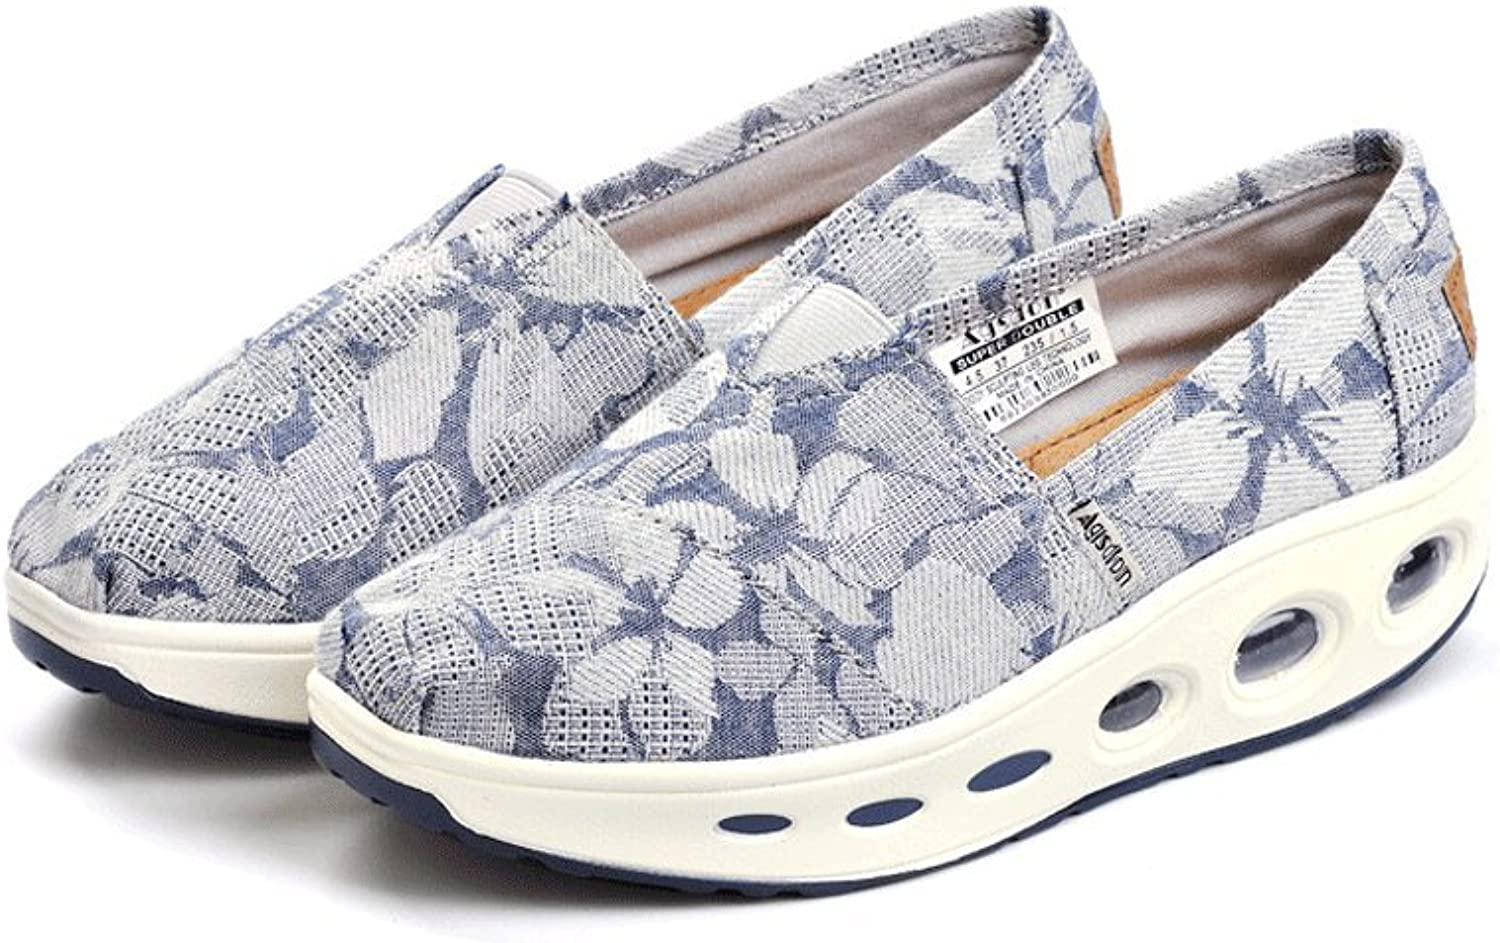 Breathable canvas shoes outdoor casual shoes old Beijing shoes shoes ladies shoes ( color   bluee , Size   35 )